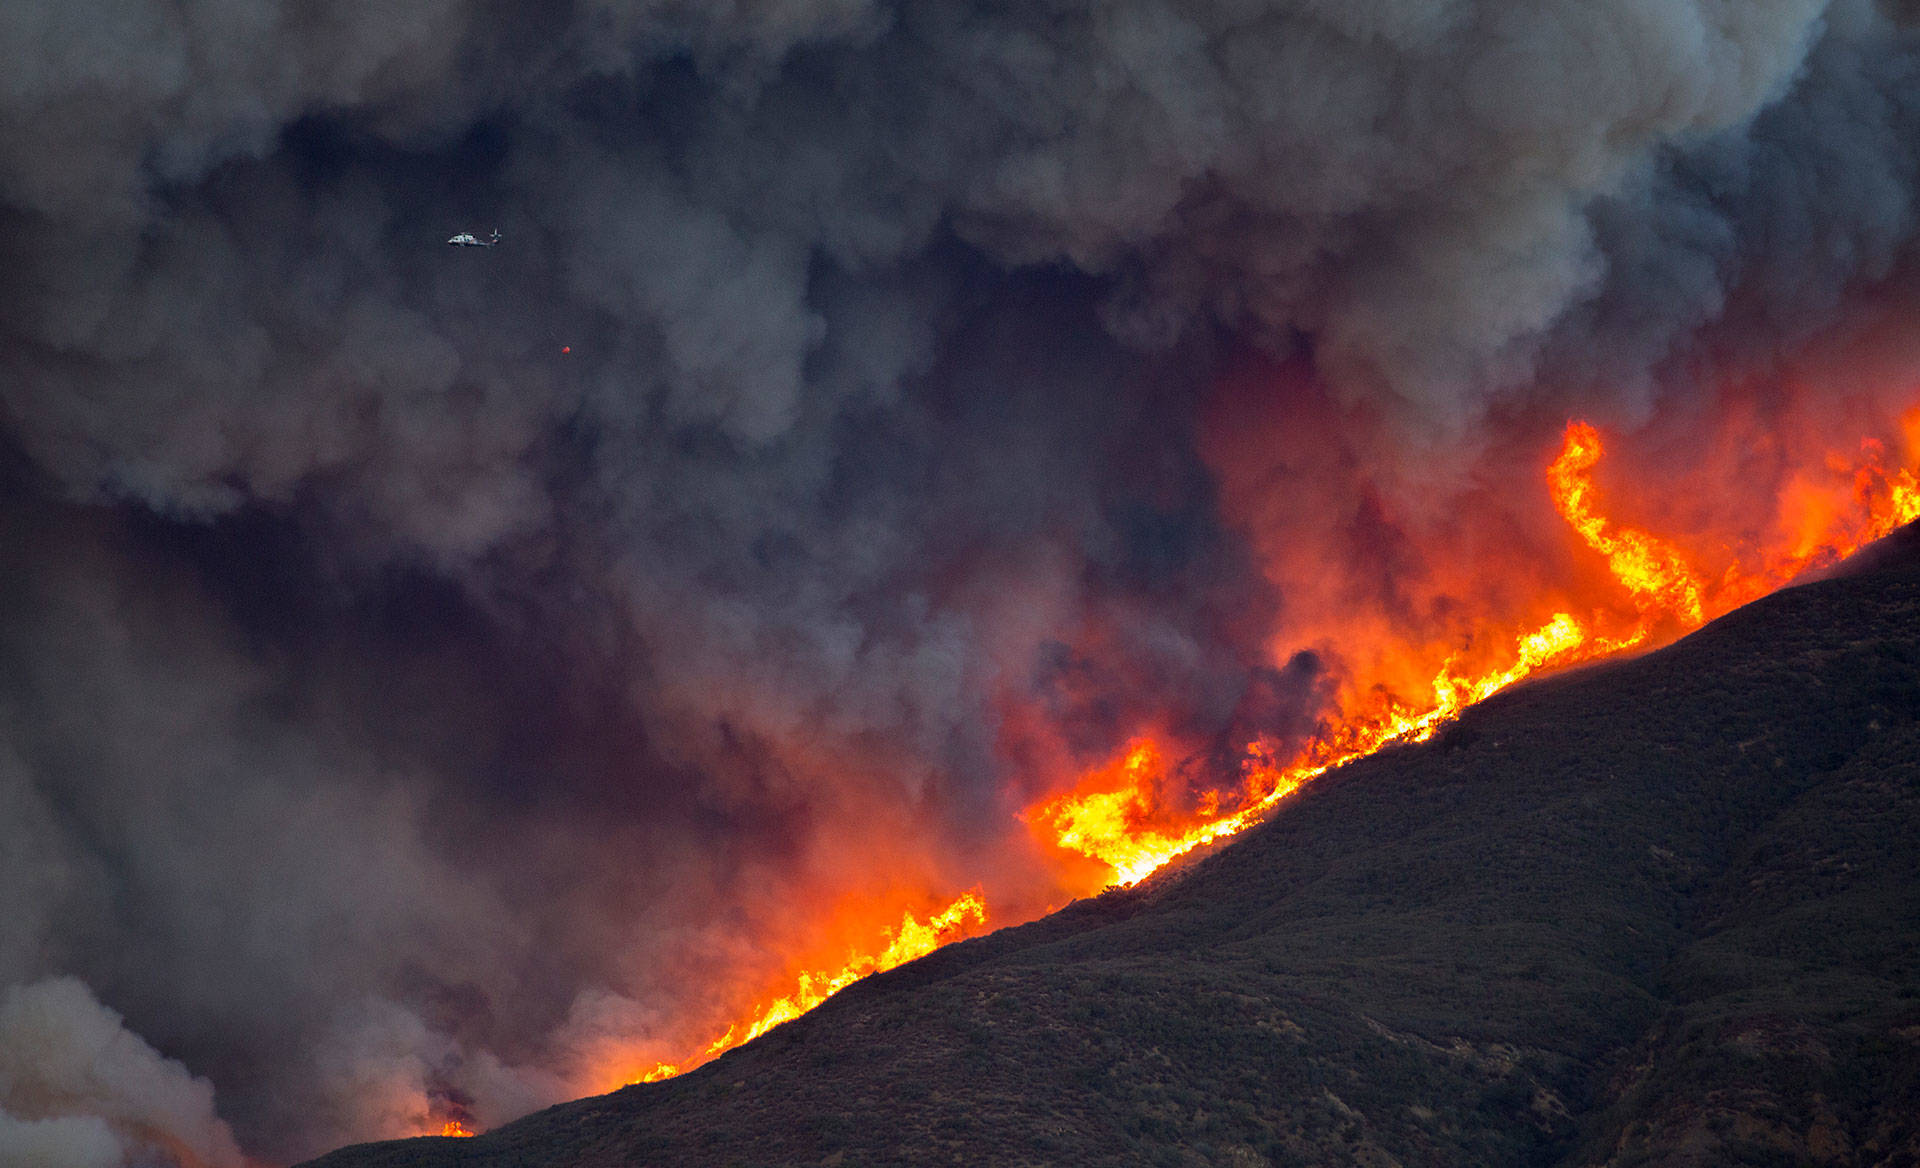 Ventura County Fire Live >> Thomas Fire Grows to 143,000 Acres, Some Evacuations Lifted | The California Report | KQED News